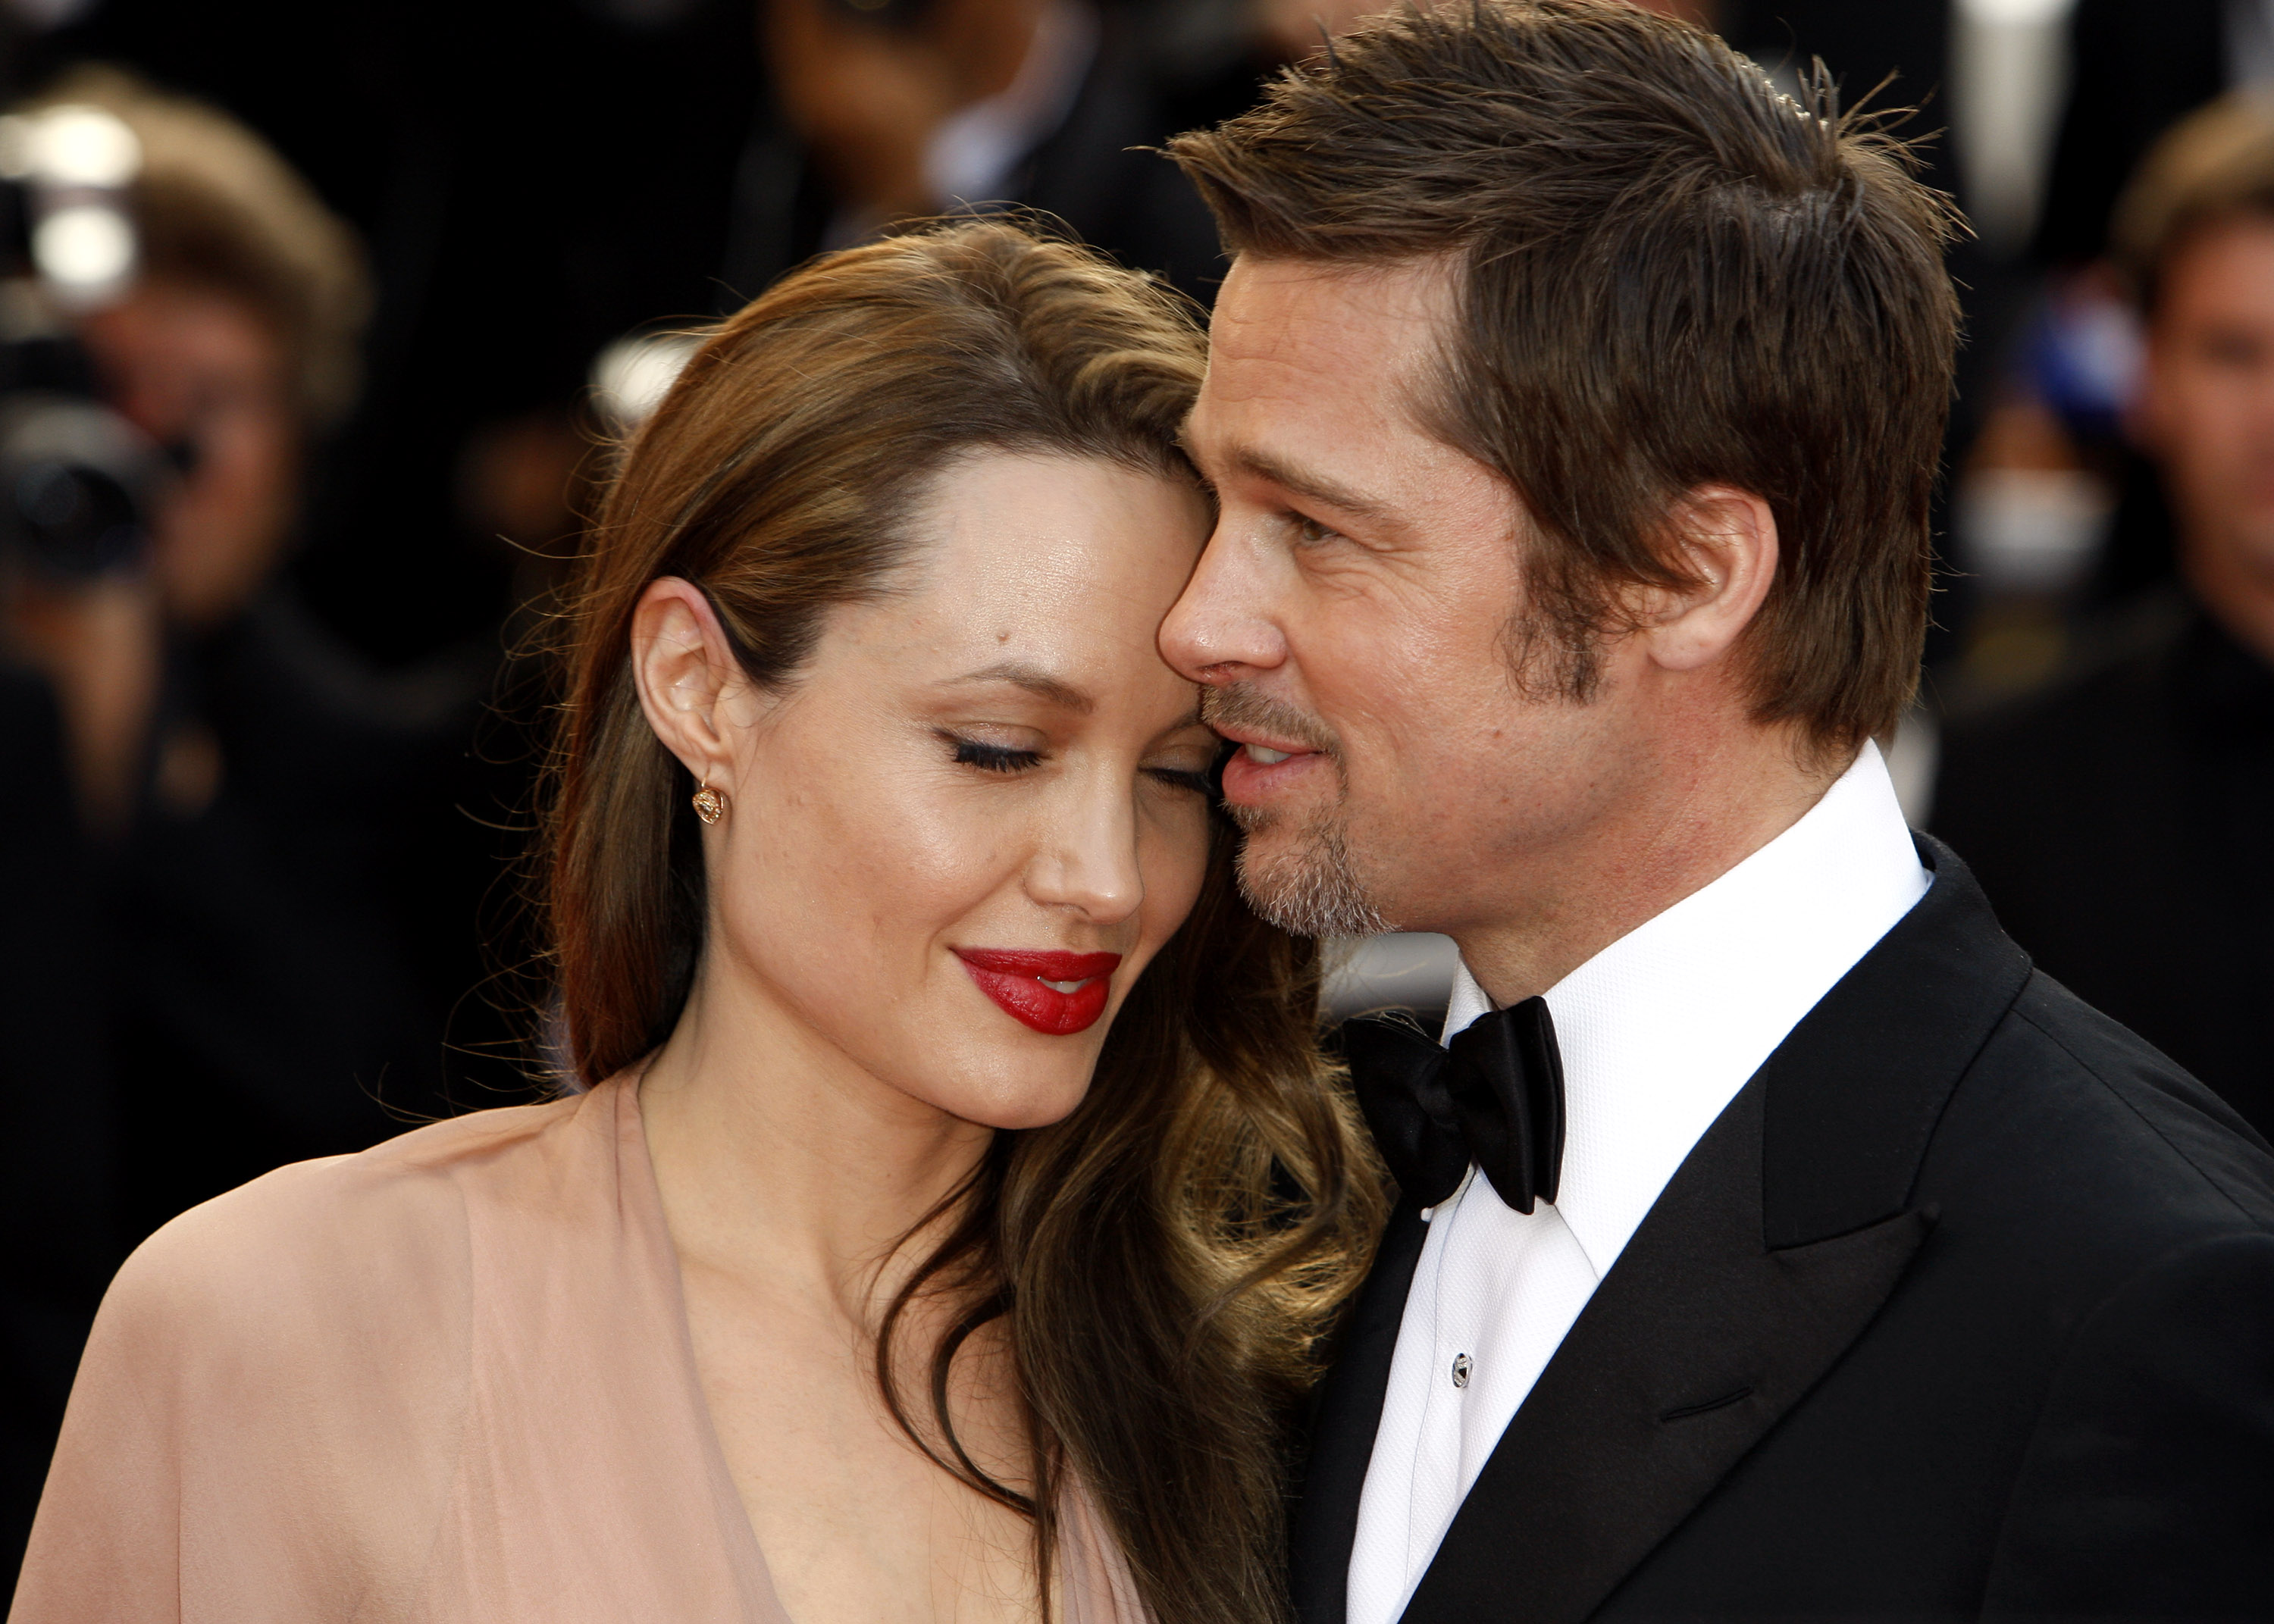 Are Brad Pitt and Angelina Jolie getting divorced?! We cannot handle this